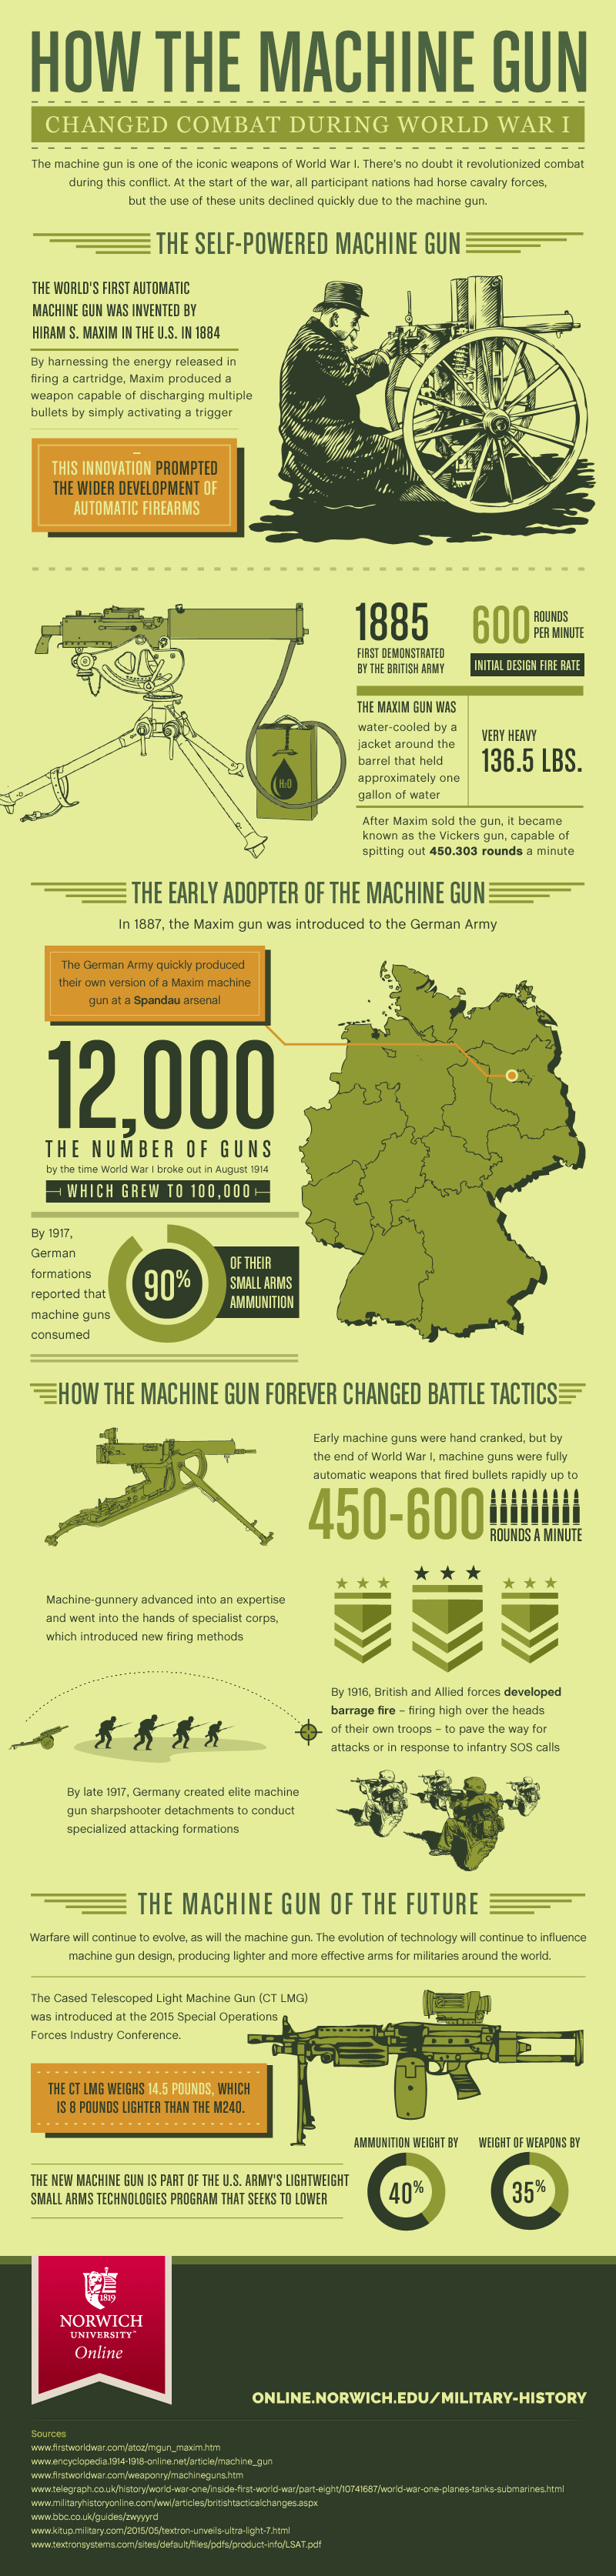 infographic on machine guns in world war i